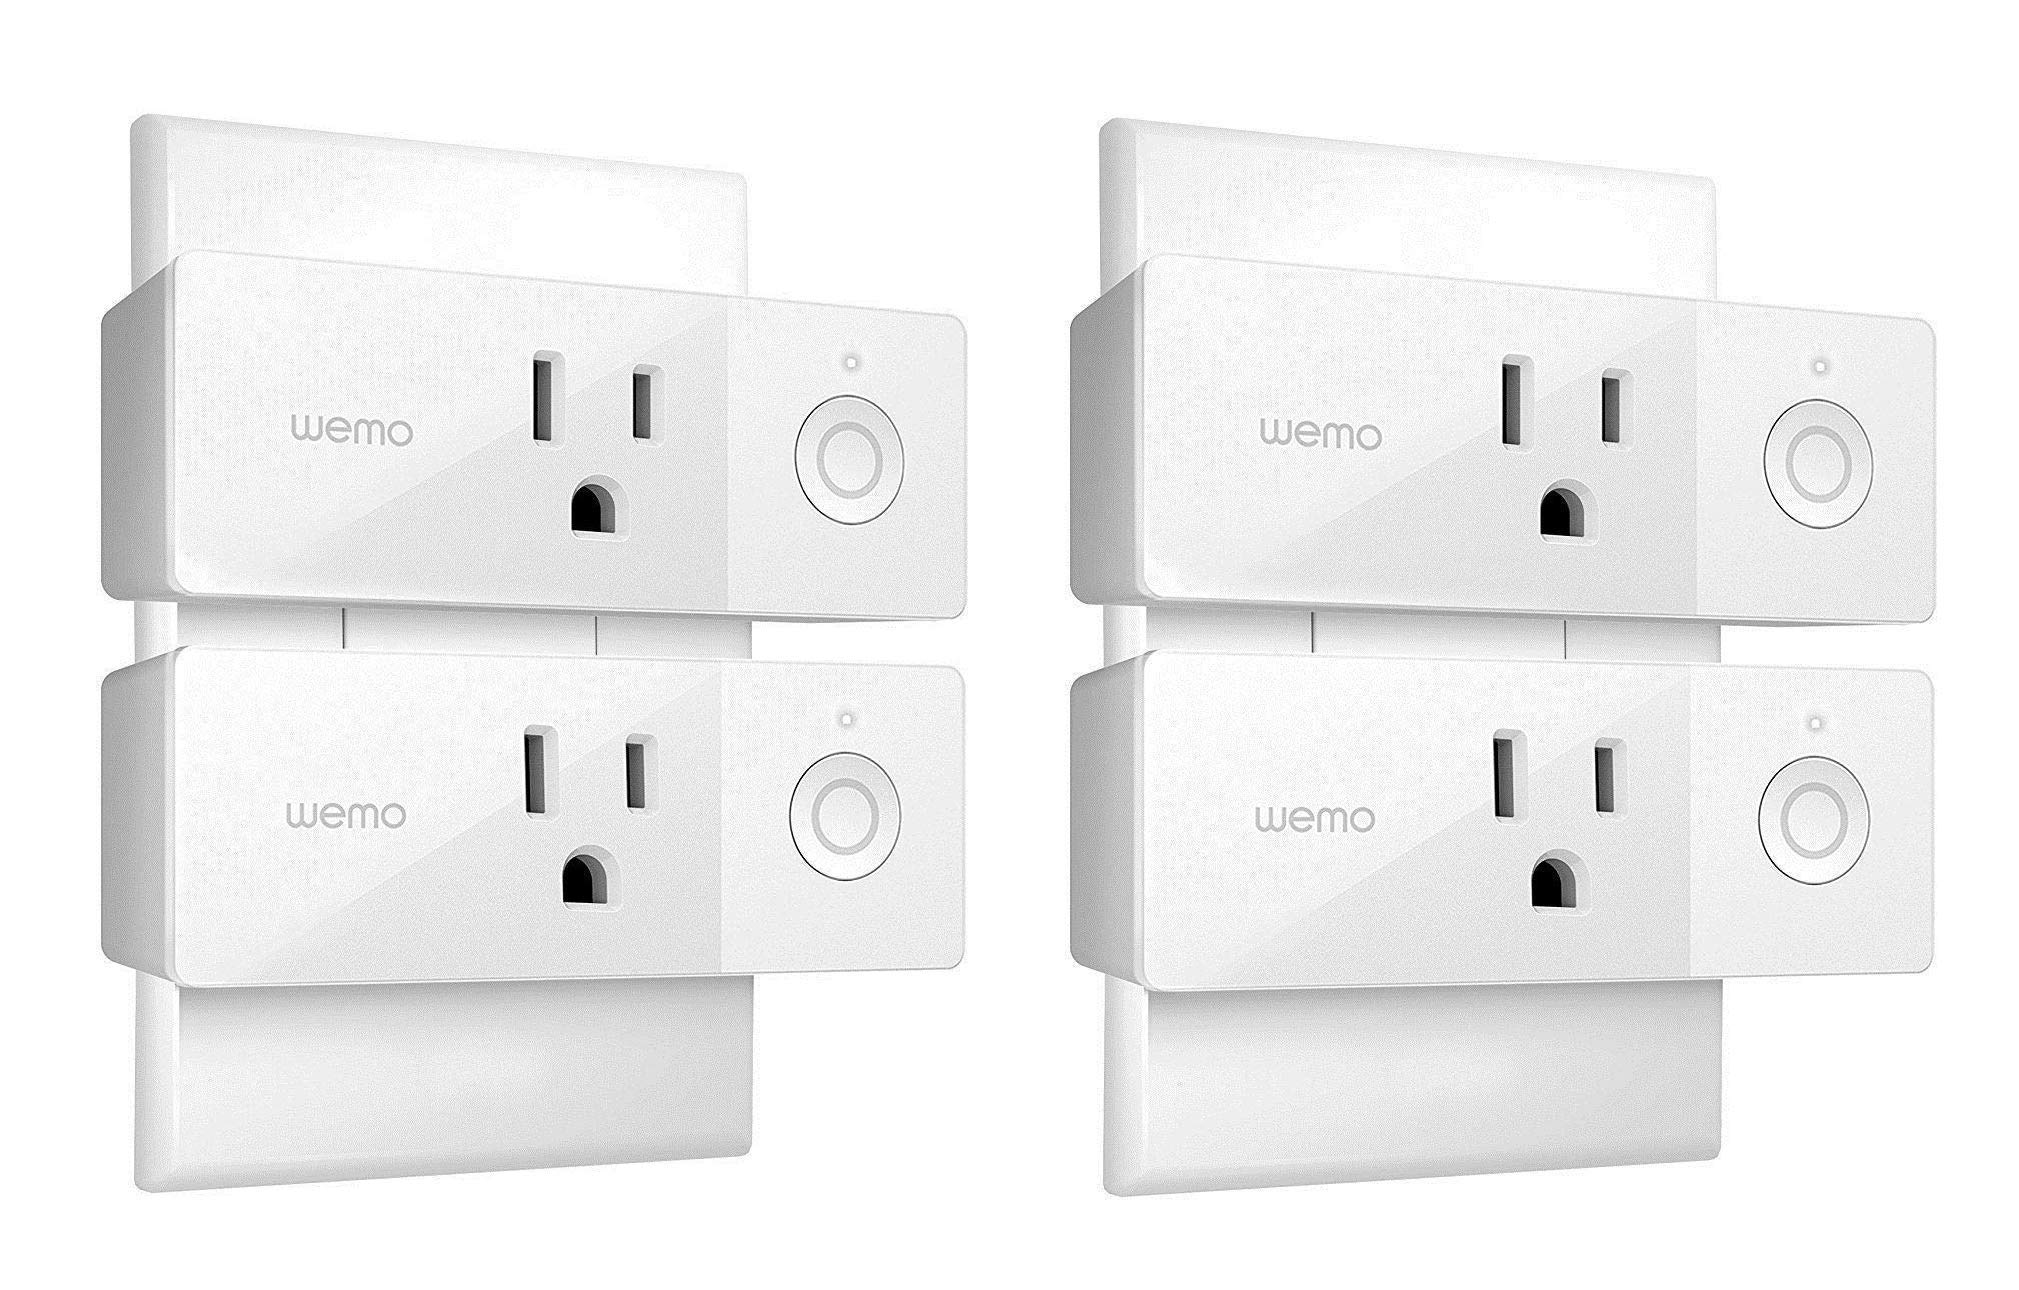 Wemo Mini Smart Plug, Wi-Fi Enabled, Compatible with Alexa (F7C063-RM2) (4 pack) (Renewed) by WeMo (Image #1)